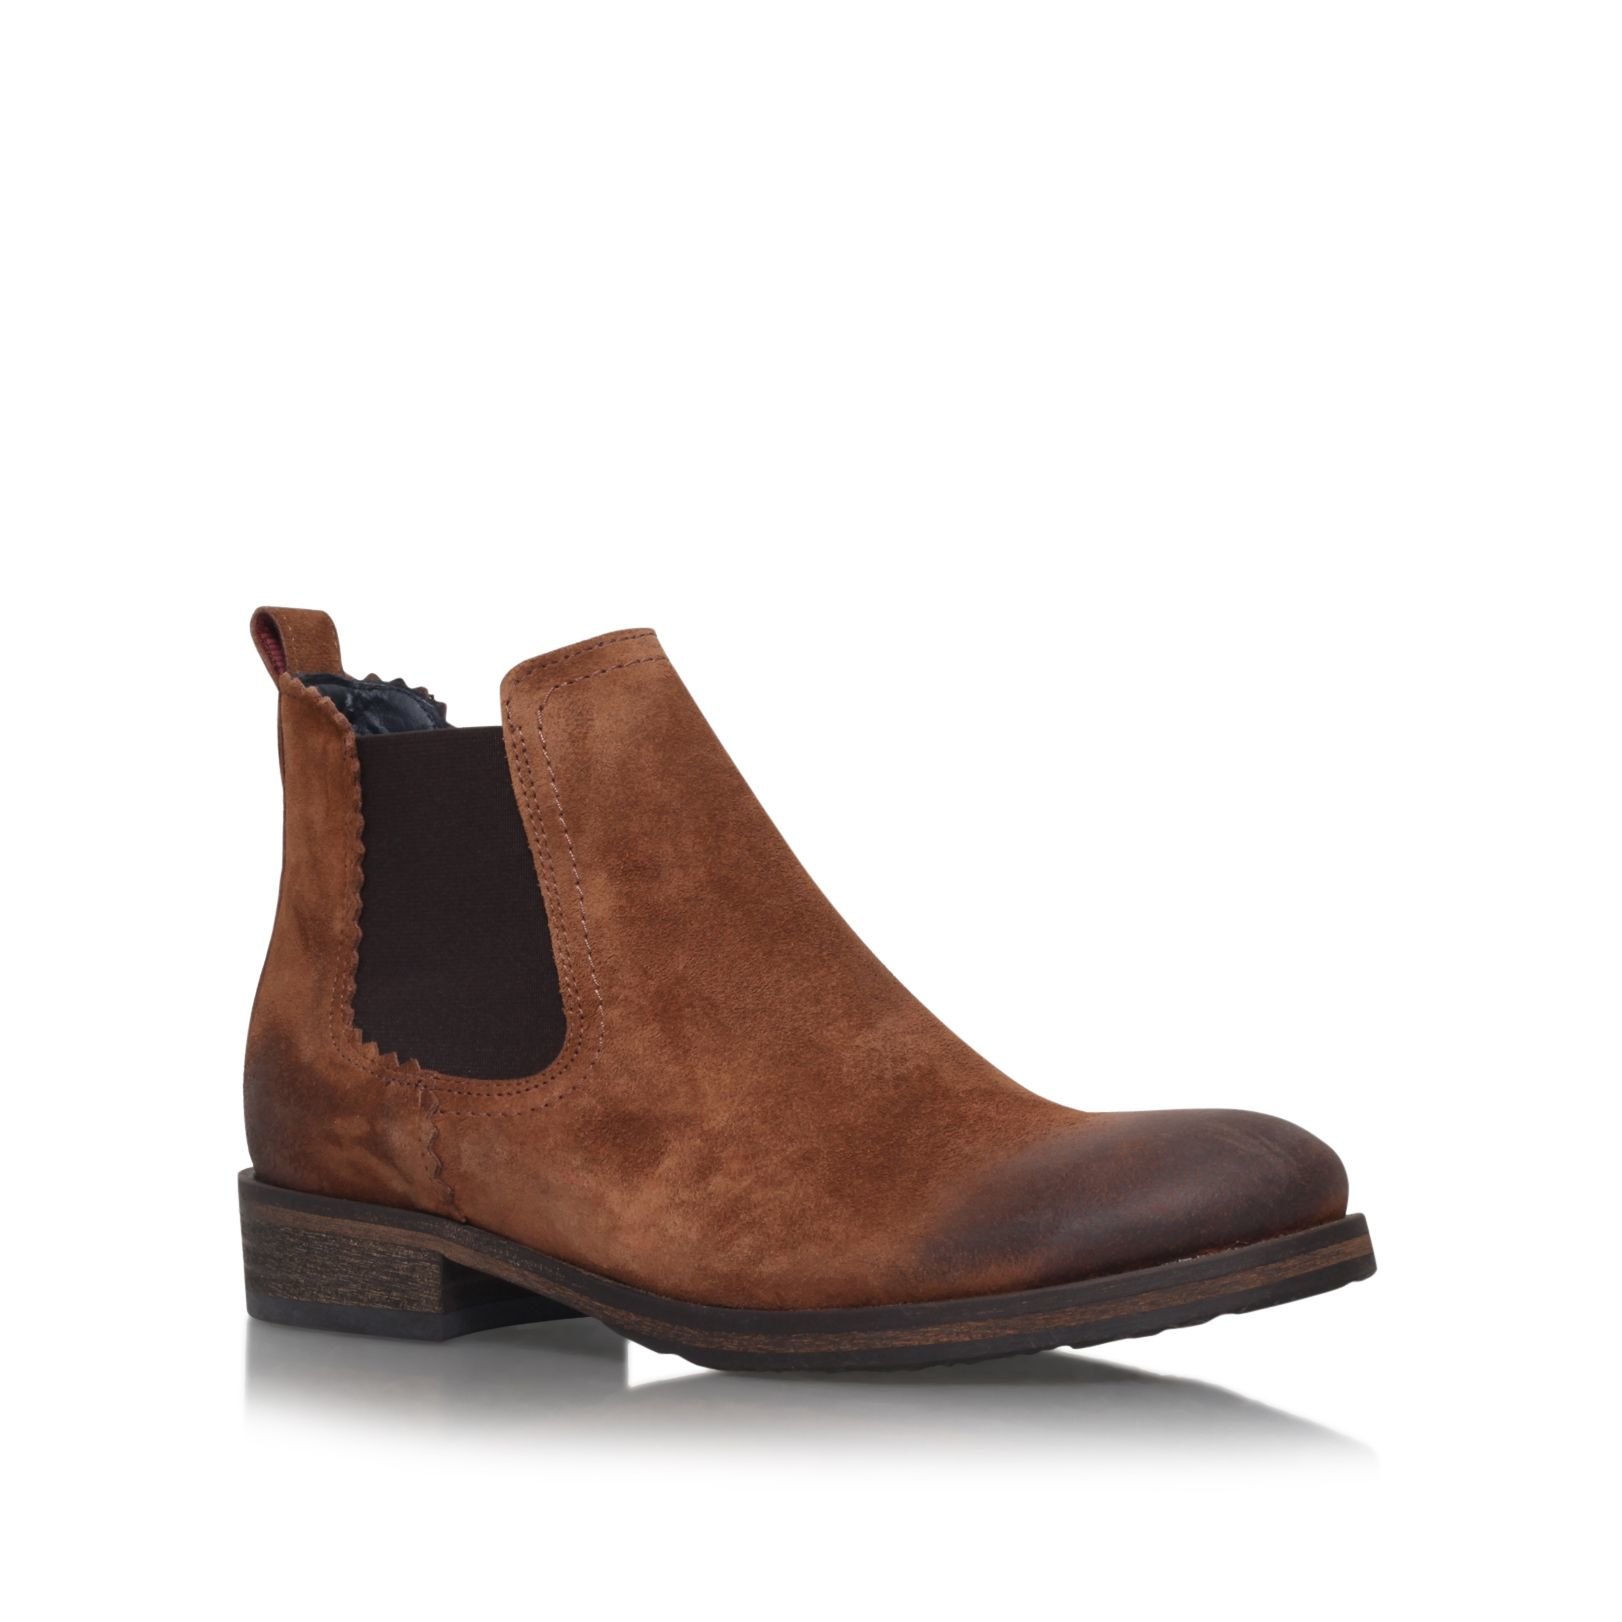 hilfiger avive 10b low heel ankle boots in brown